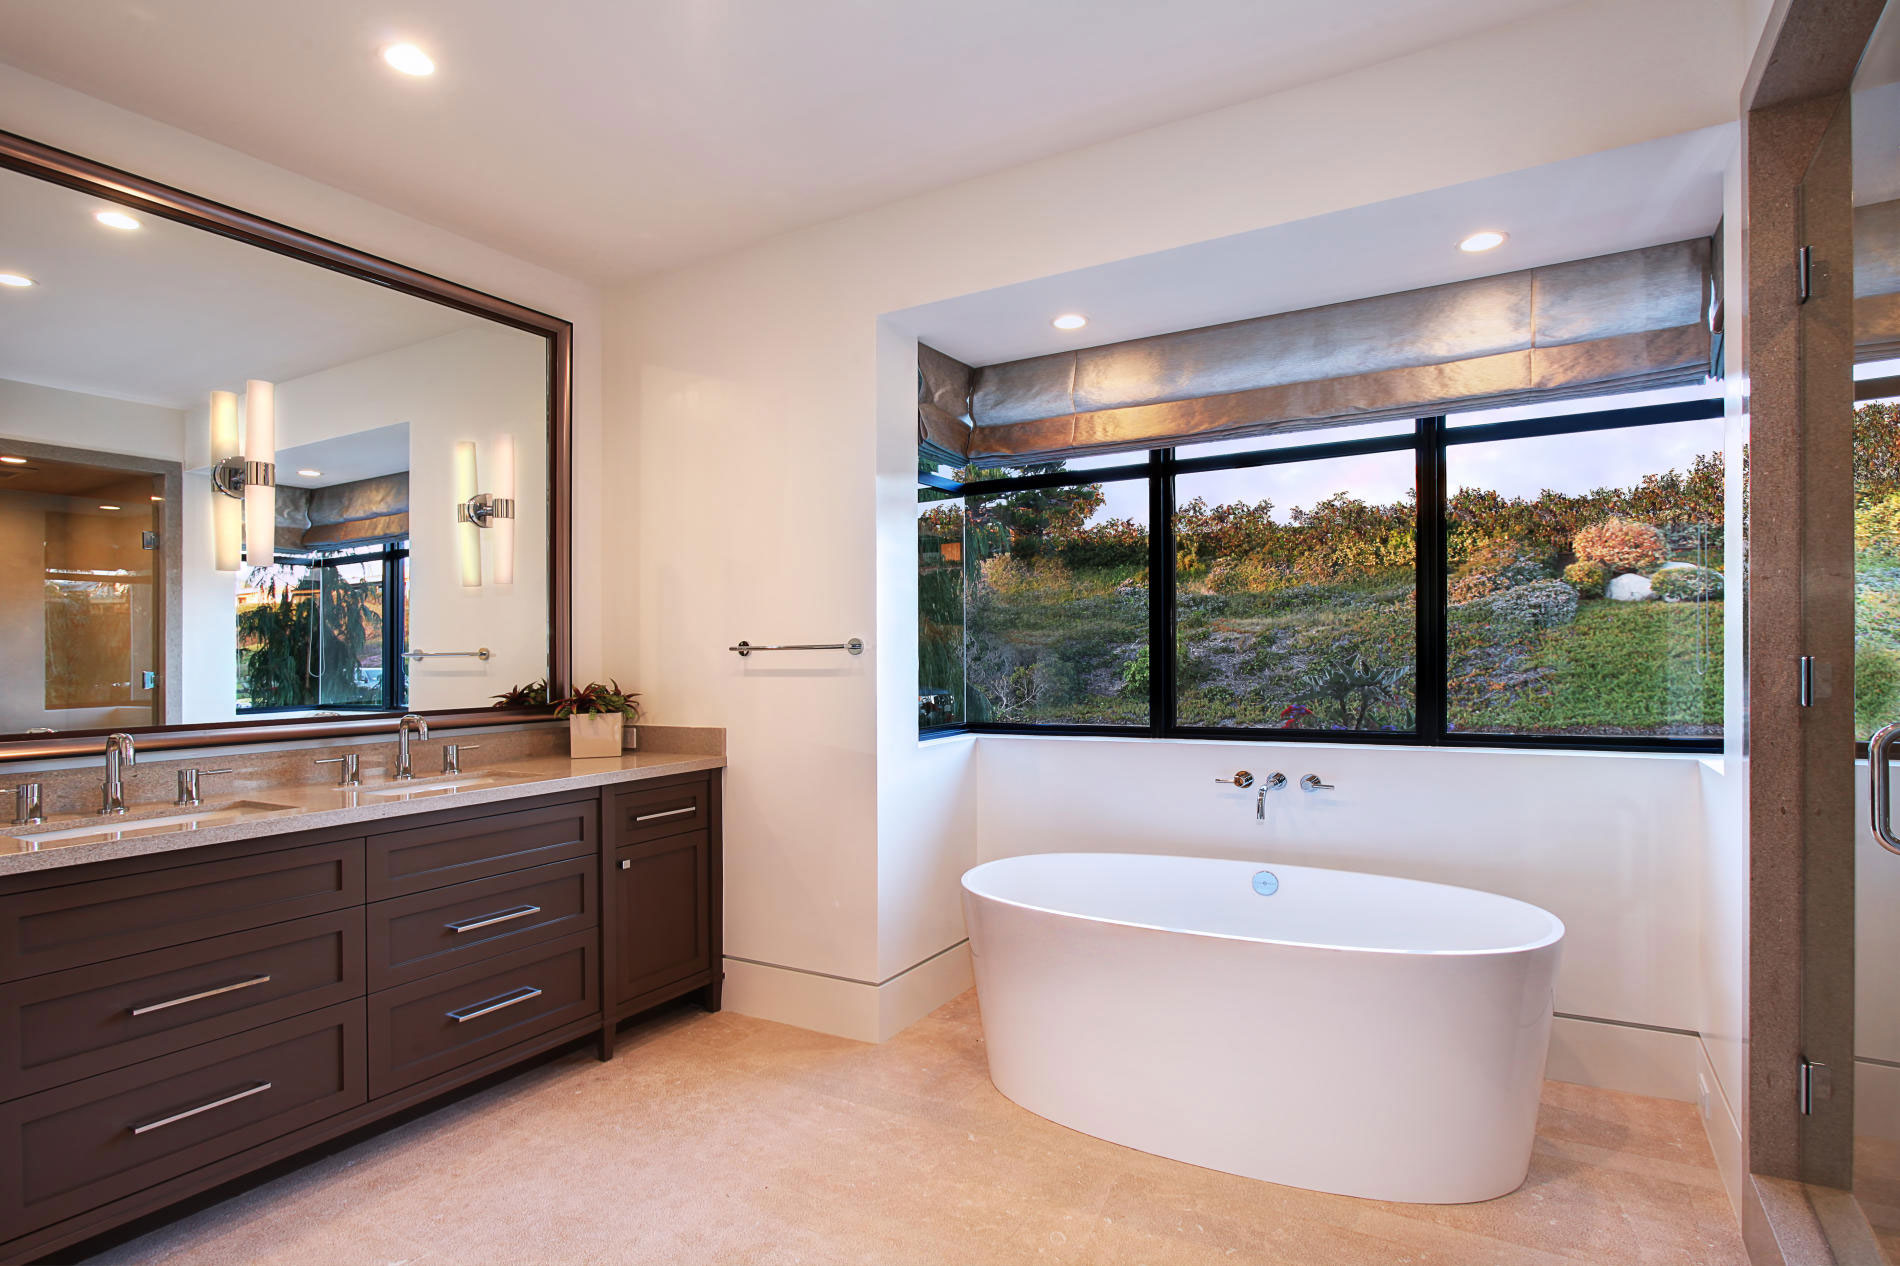 Bathroom Mirror, Sinks, Bath, Home in Corona del Mar, California